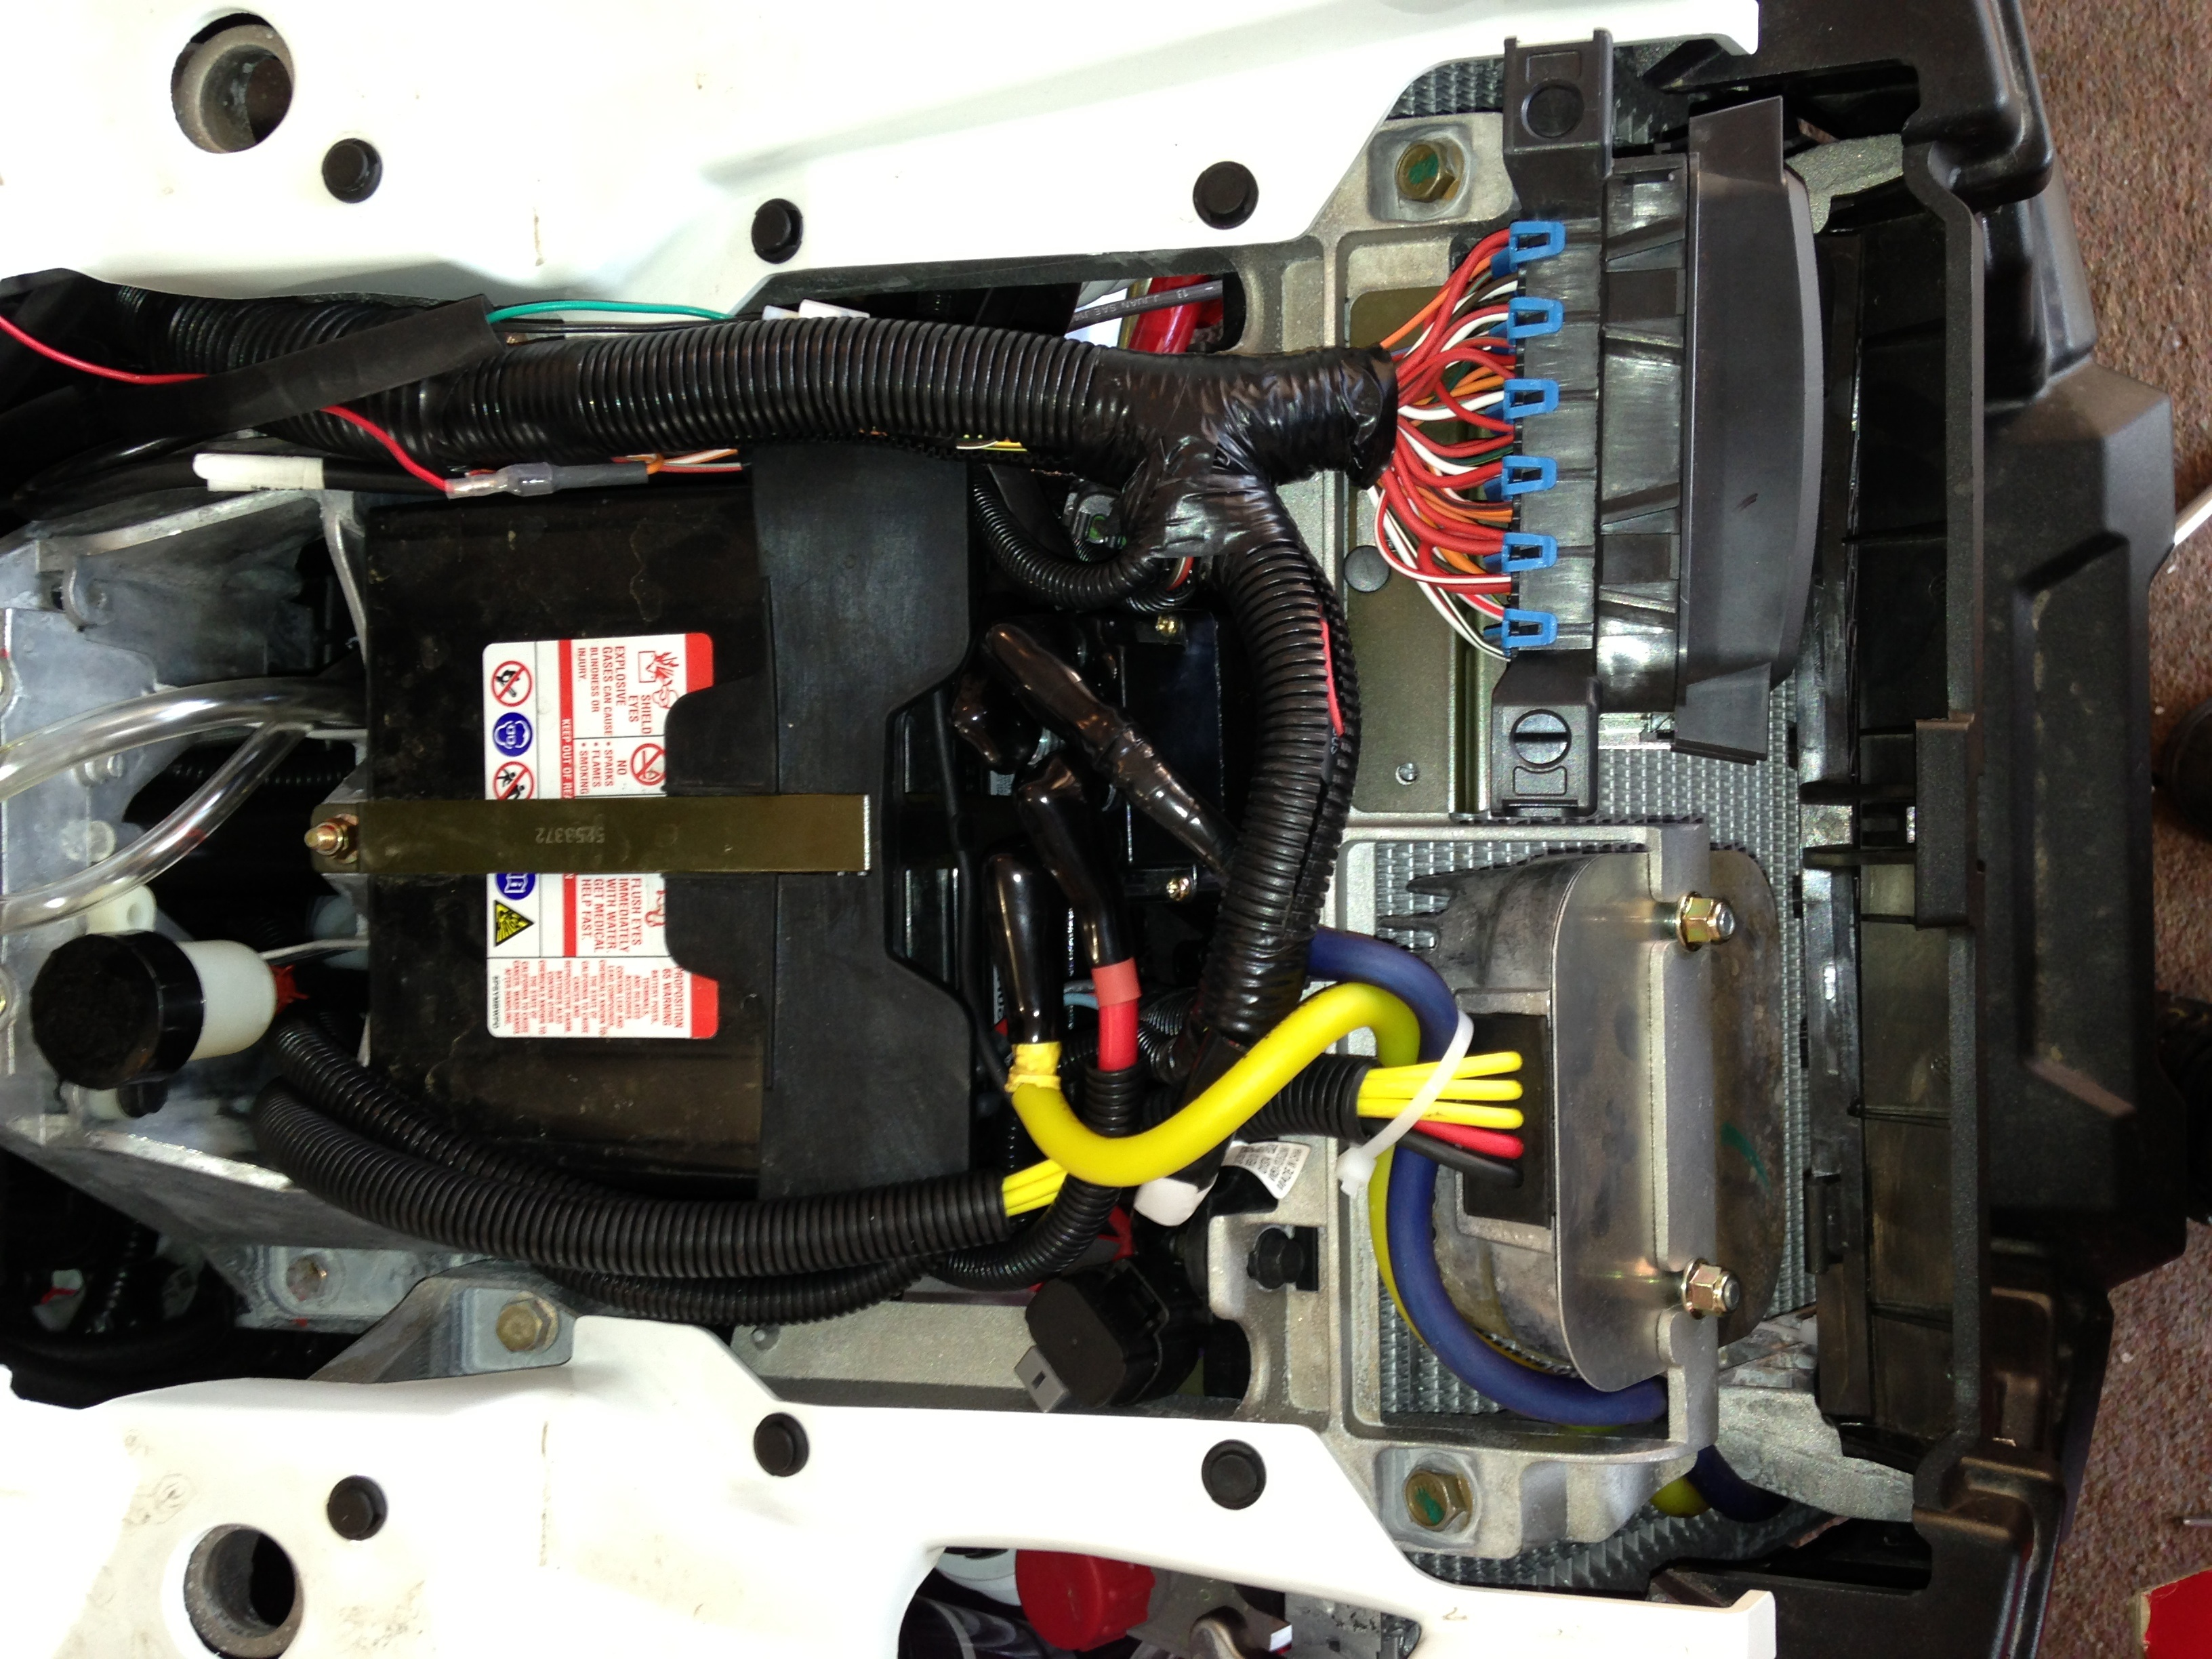 Polaris General Winch Wiring Harness 36 Diagram Images Warn A2500 18925d1401785976 Hd 3500 Install Please Help Image